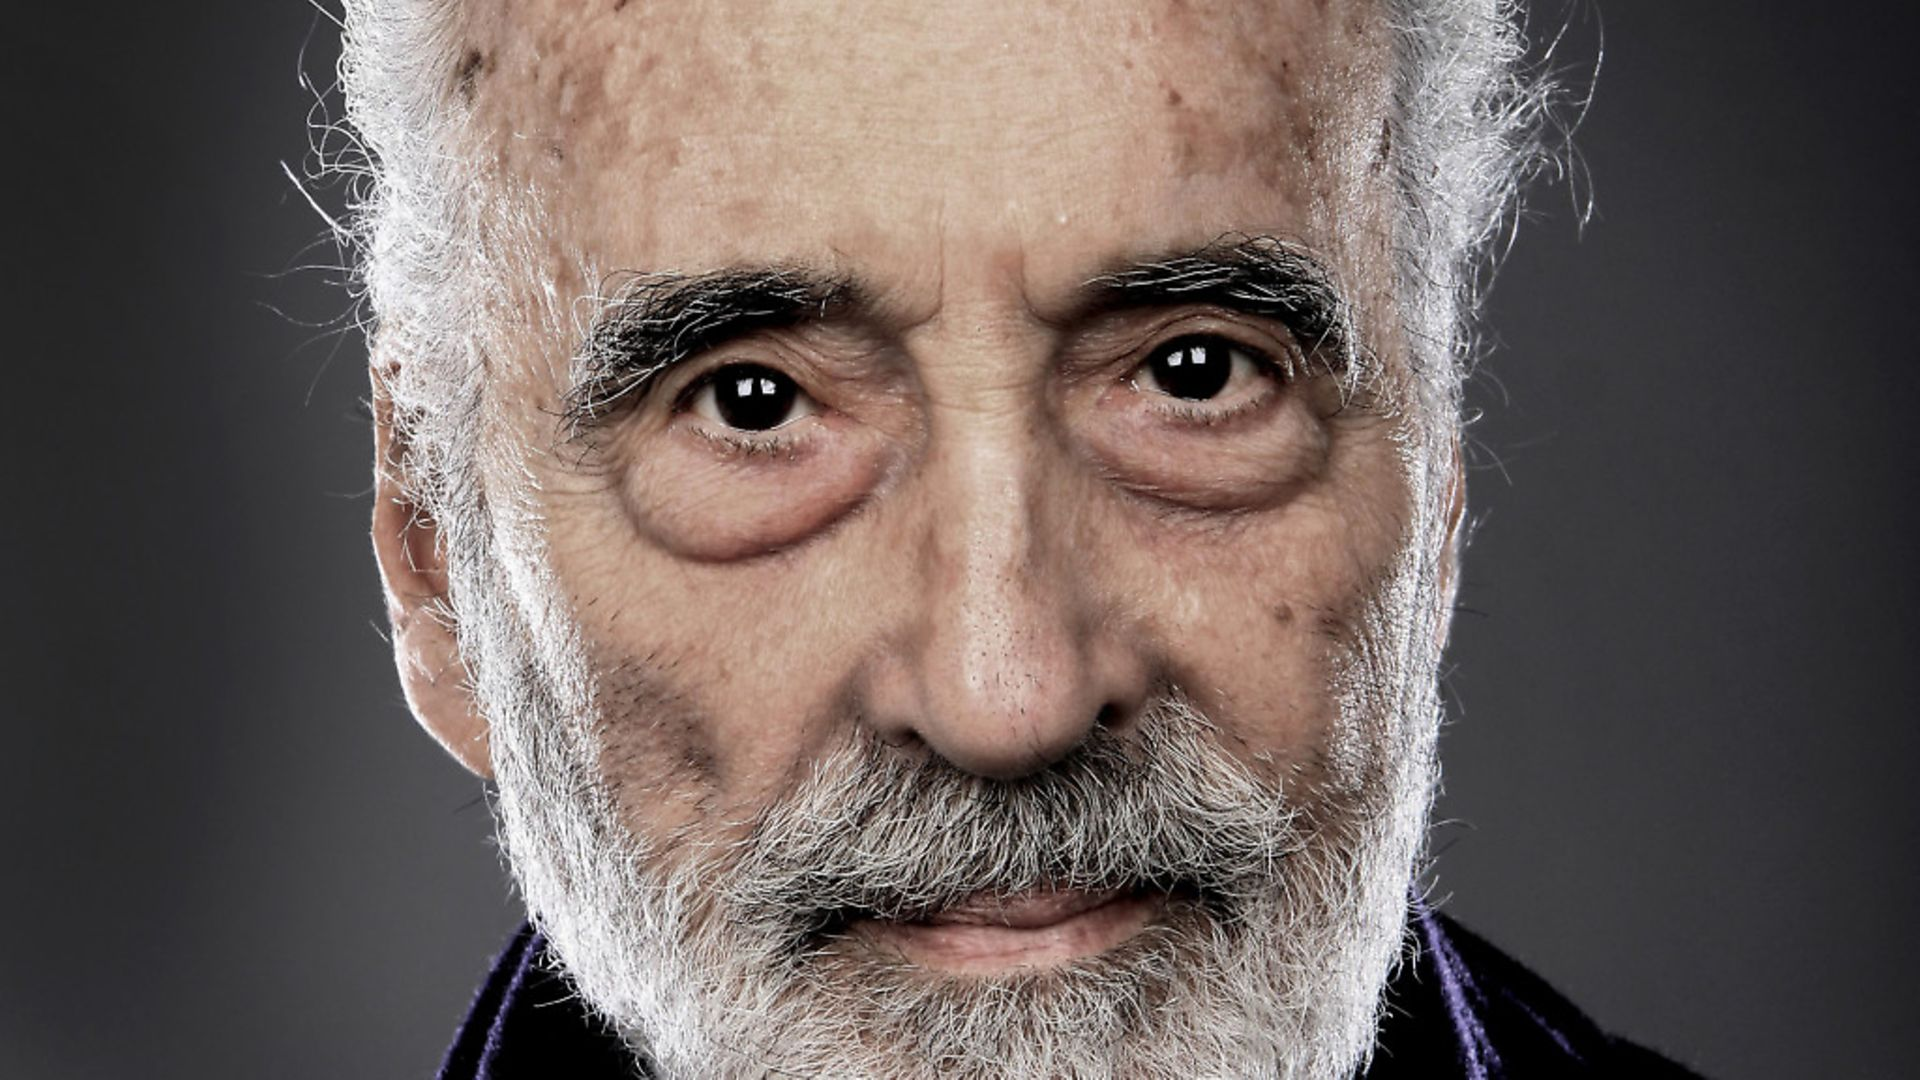 Christopher Lee, portrait, backstage at the Golden Gods  Awards at the O2 in London on June 15th 2014. (Photo by Mick Hutson/Redferns) - Credit: Redferns